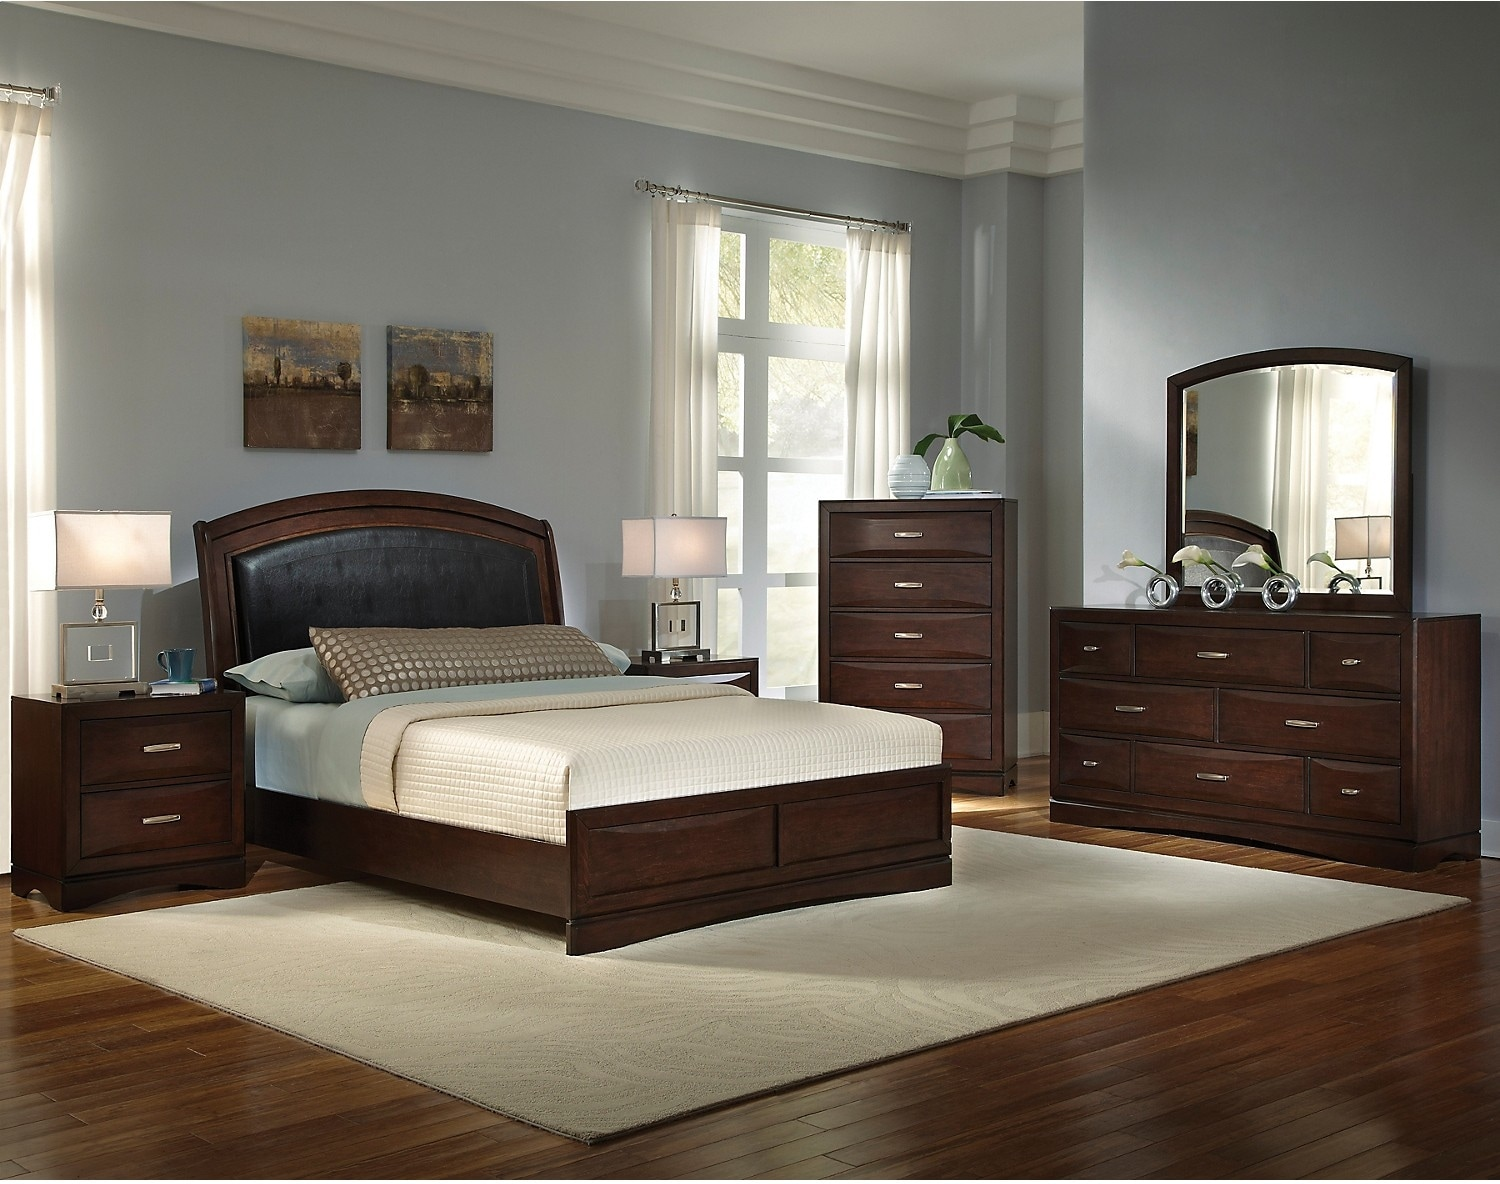 Beverly 8 piece queen bedroom set the brick for Bedroom set with bed